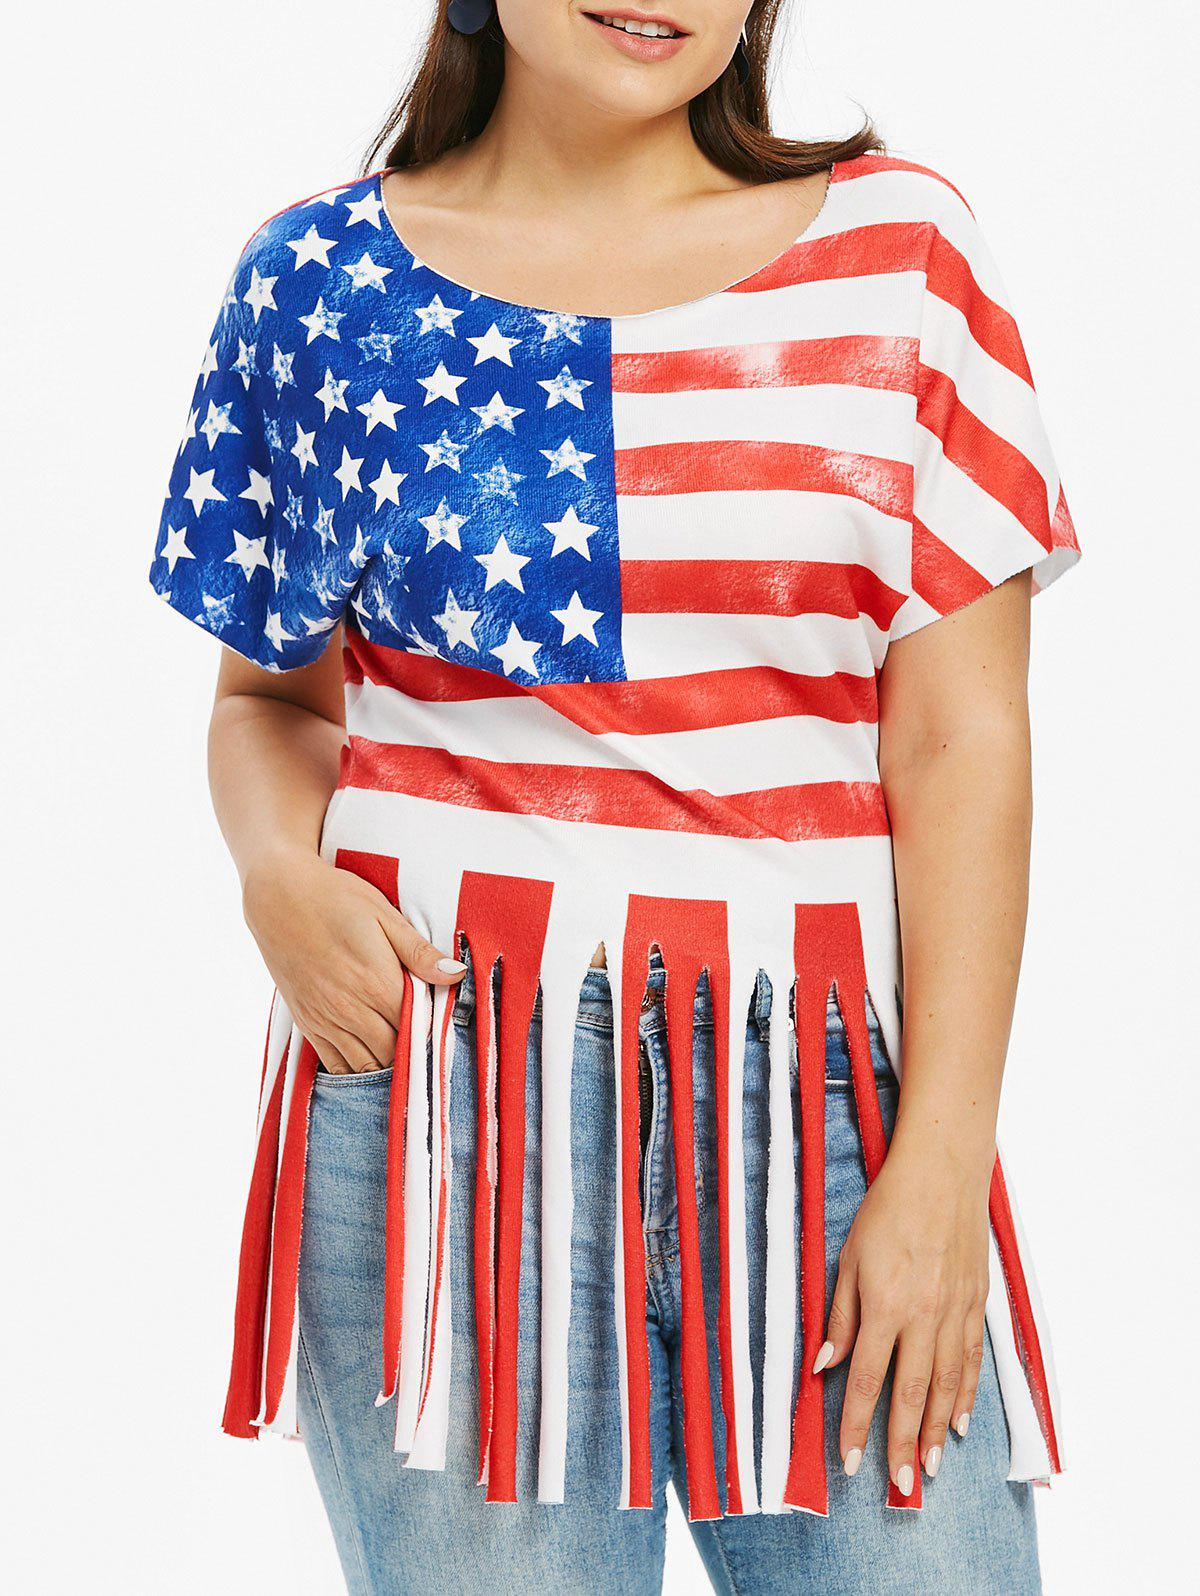 87d64350431 43% OFF  Plus Size Fringe American Flag Patriotic T-shirt